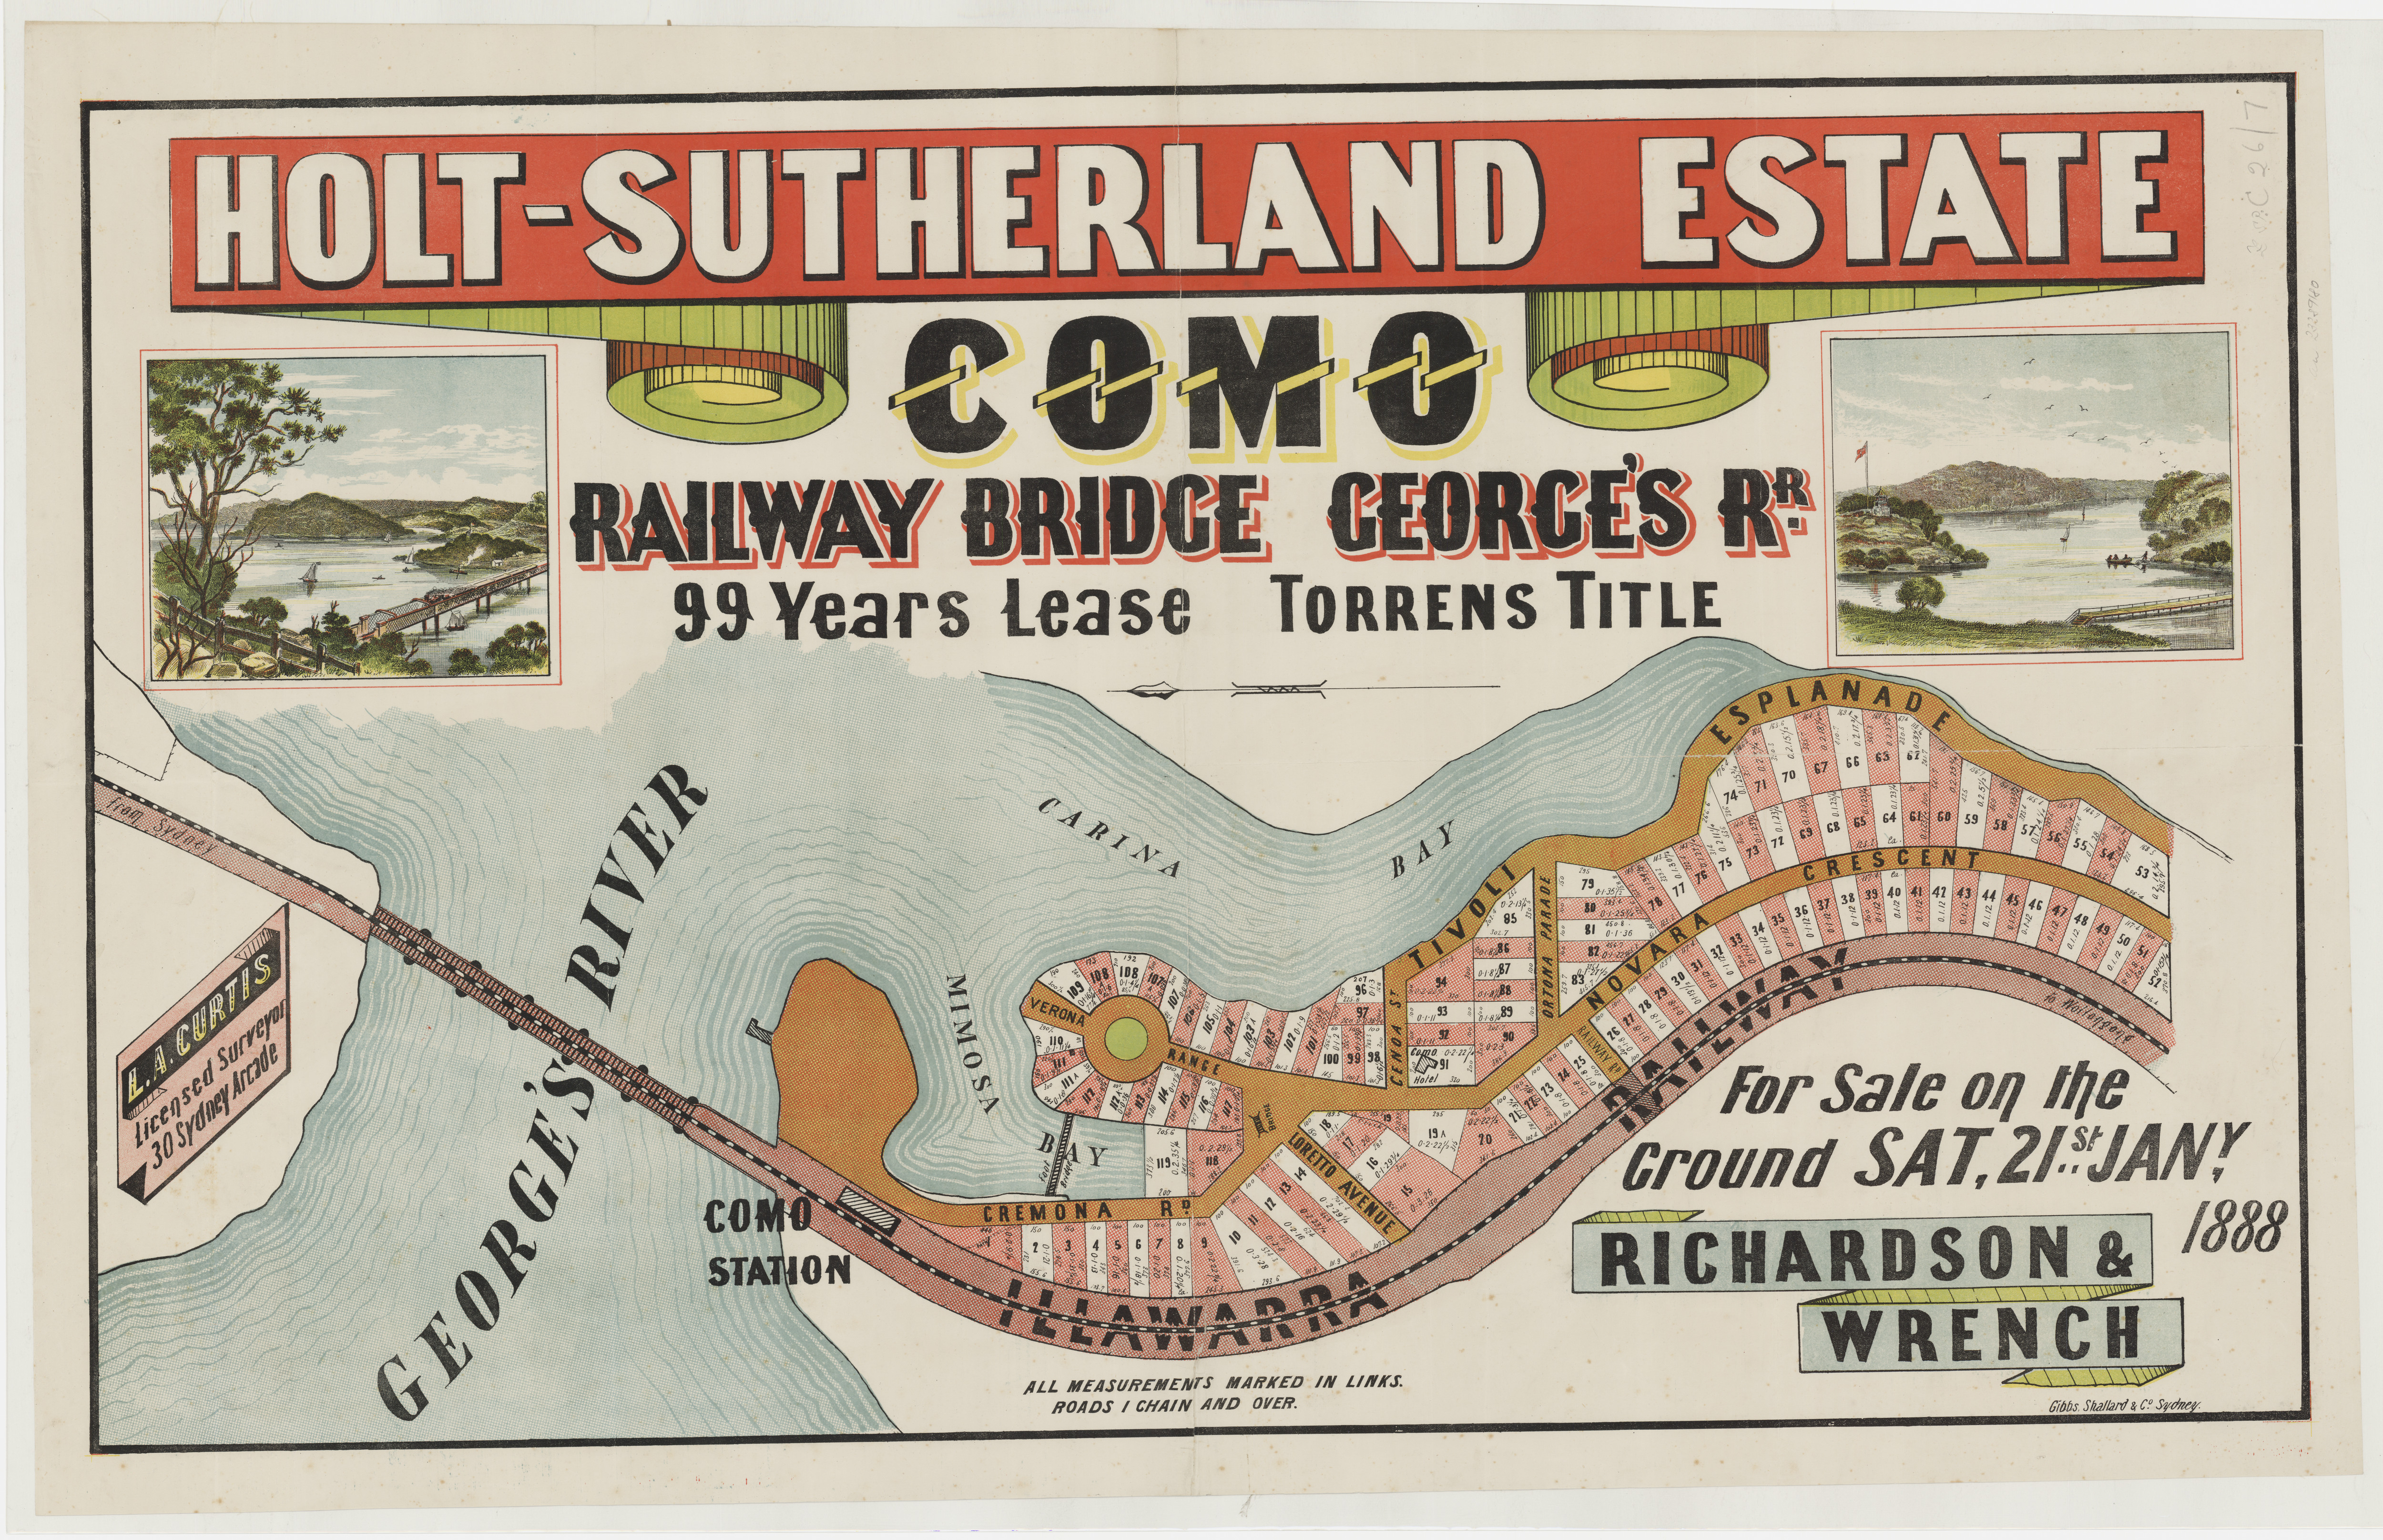 Subdivision Plan: 007 - Z/SP/C26/7 - Holt-Suterland Estate Como Railway Bridge George's Road - Tivoli Esplanade, Cremona Rd, Novara Crescent, 1887